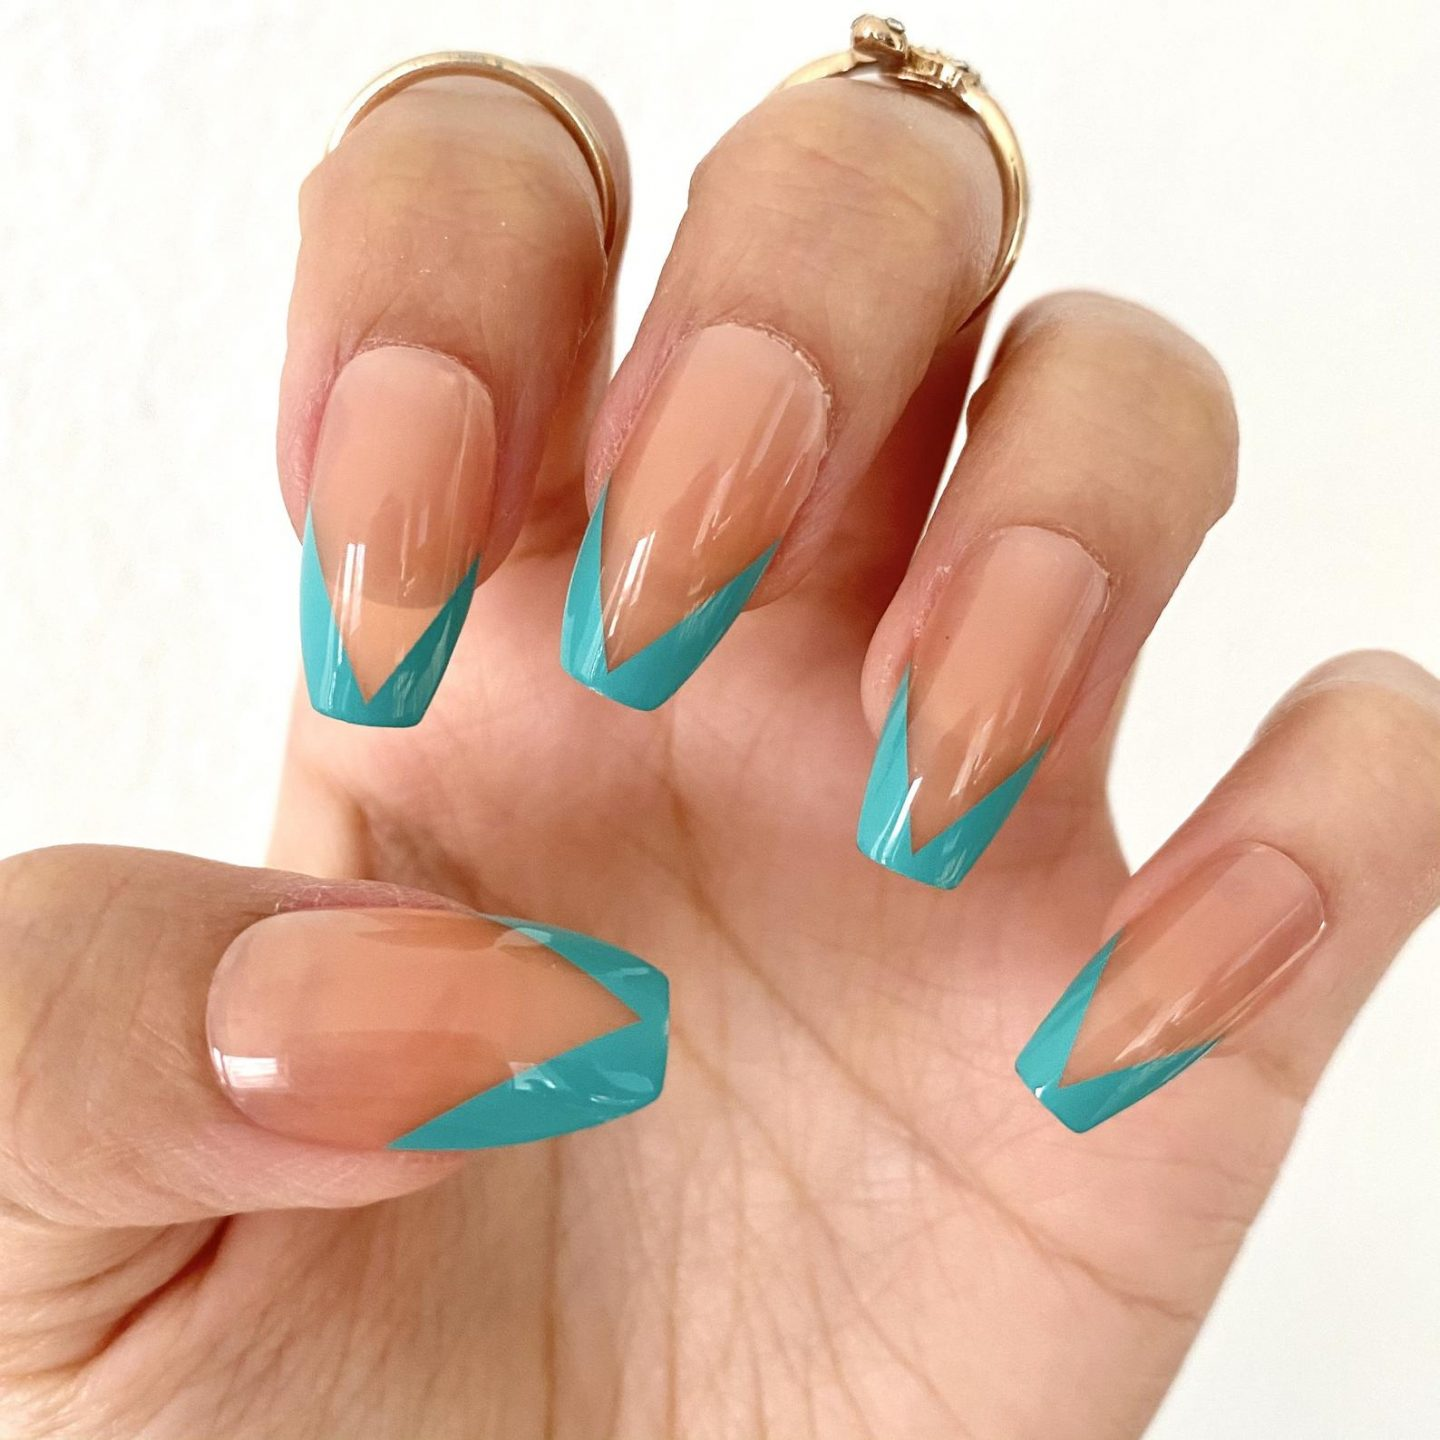 Teal French tip nails in coffin shape